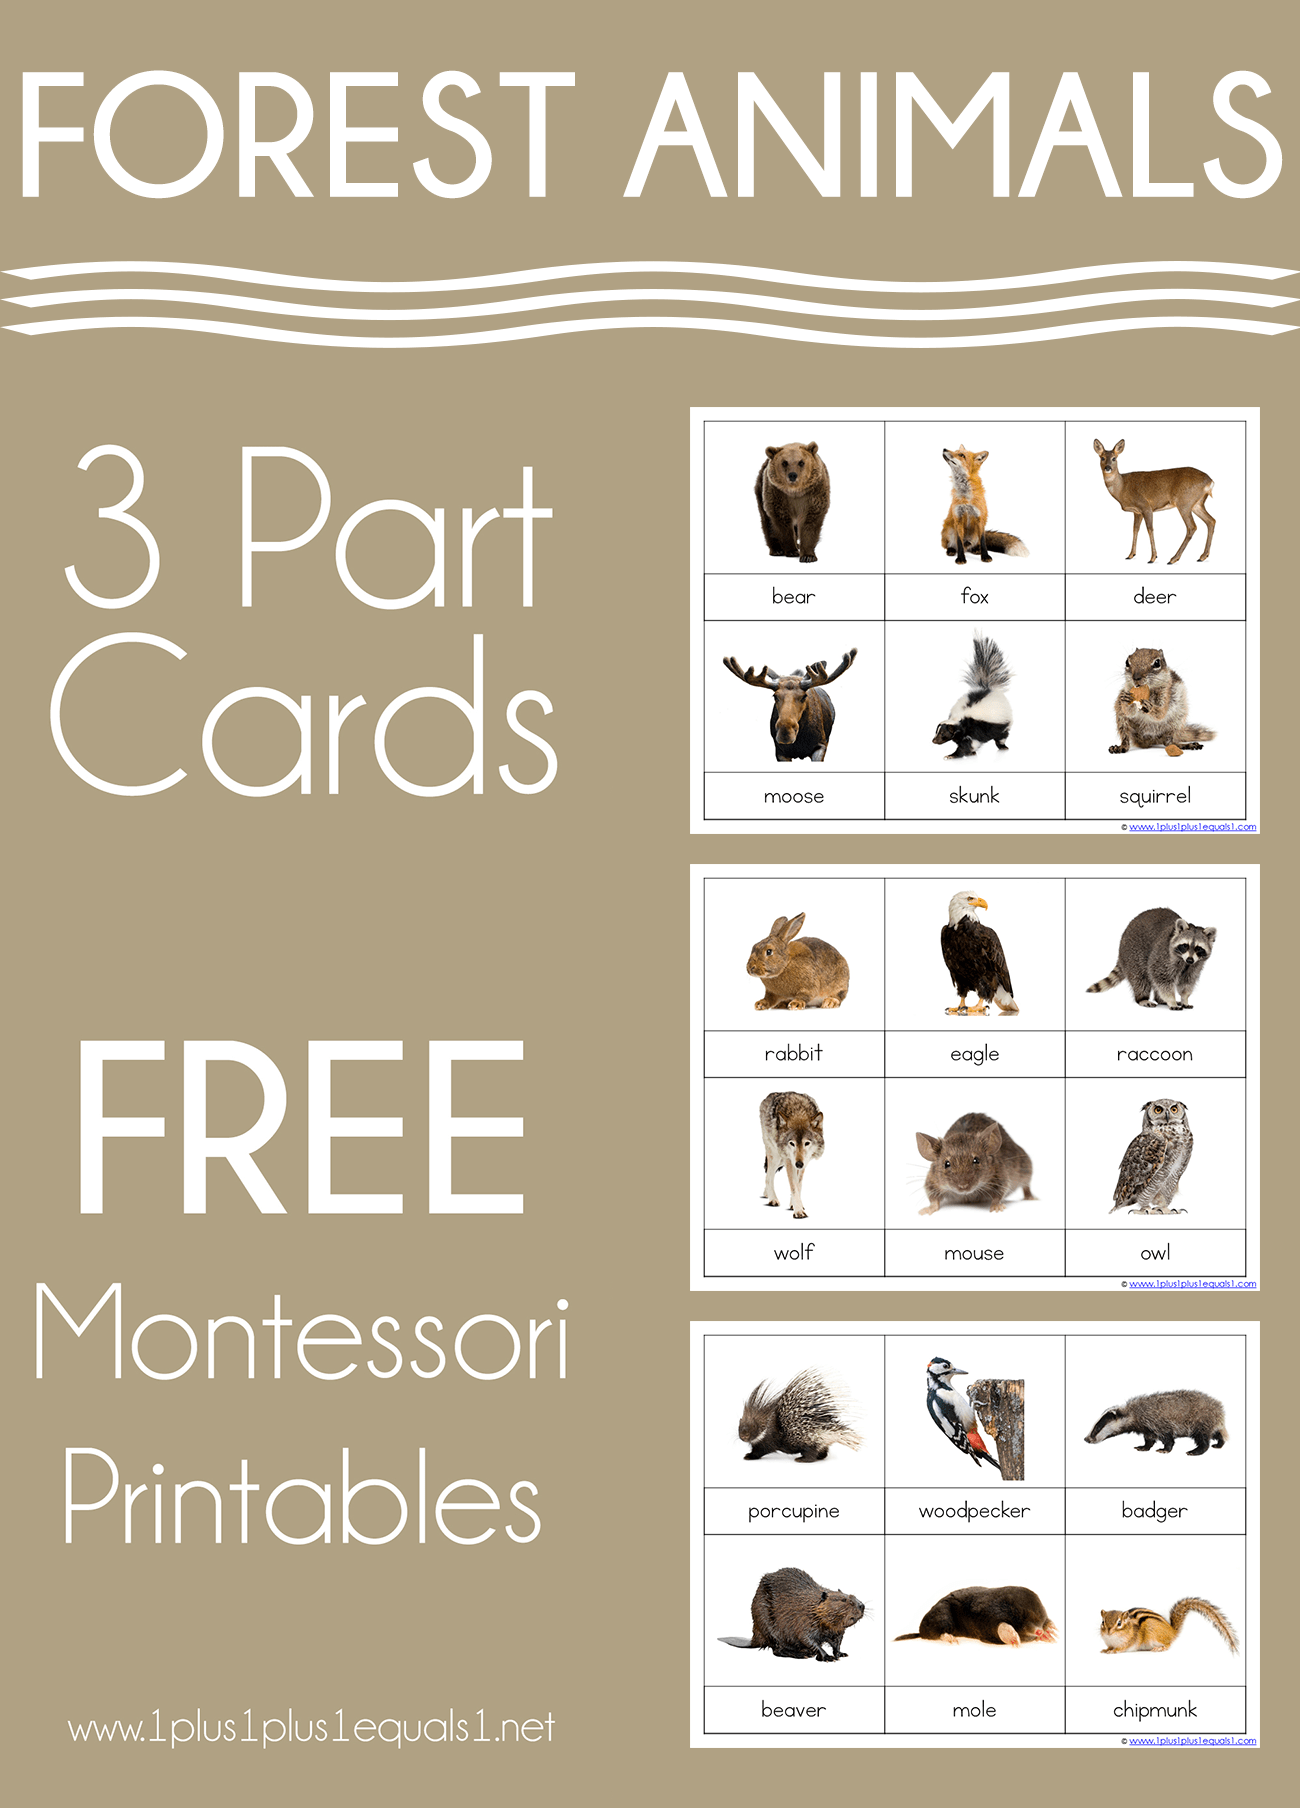 hight resolution of Forest Animals Montessori Printables – FREE 3 Part Cards - 1+1+1\u003d1